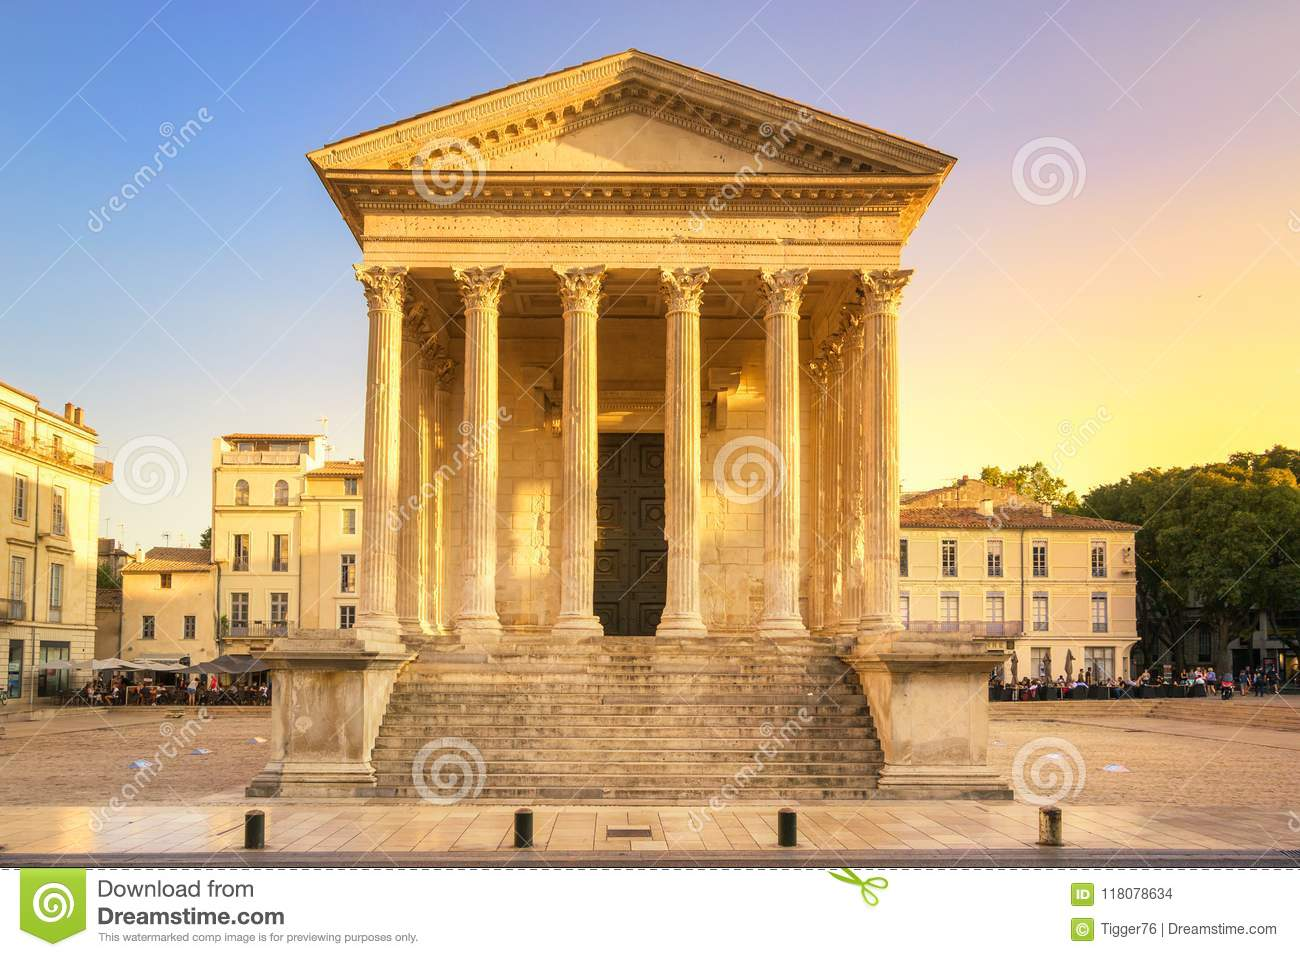 Maison Carree Nimes France Stock Photo Image Of Town